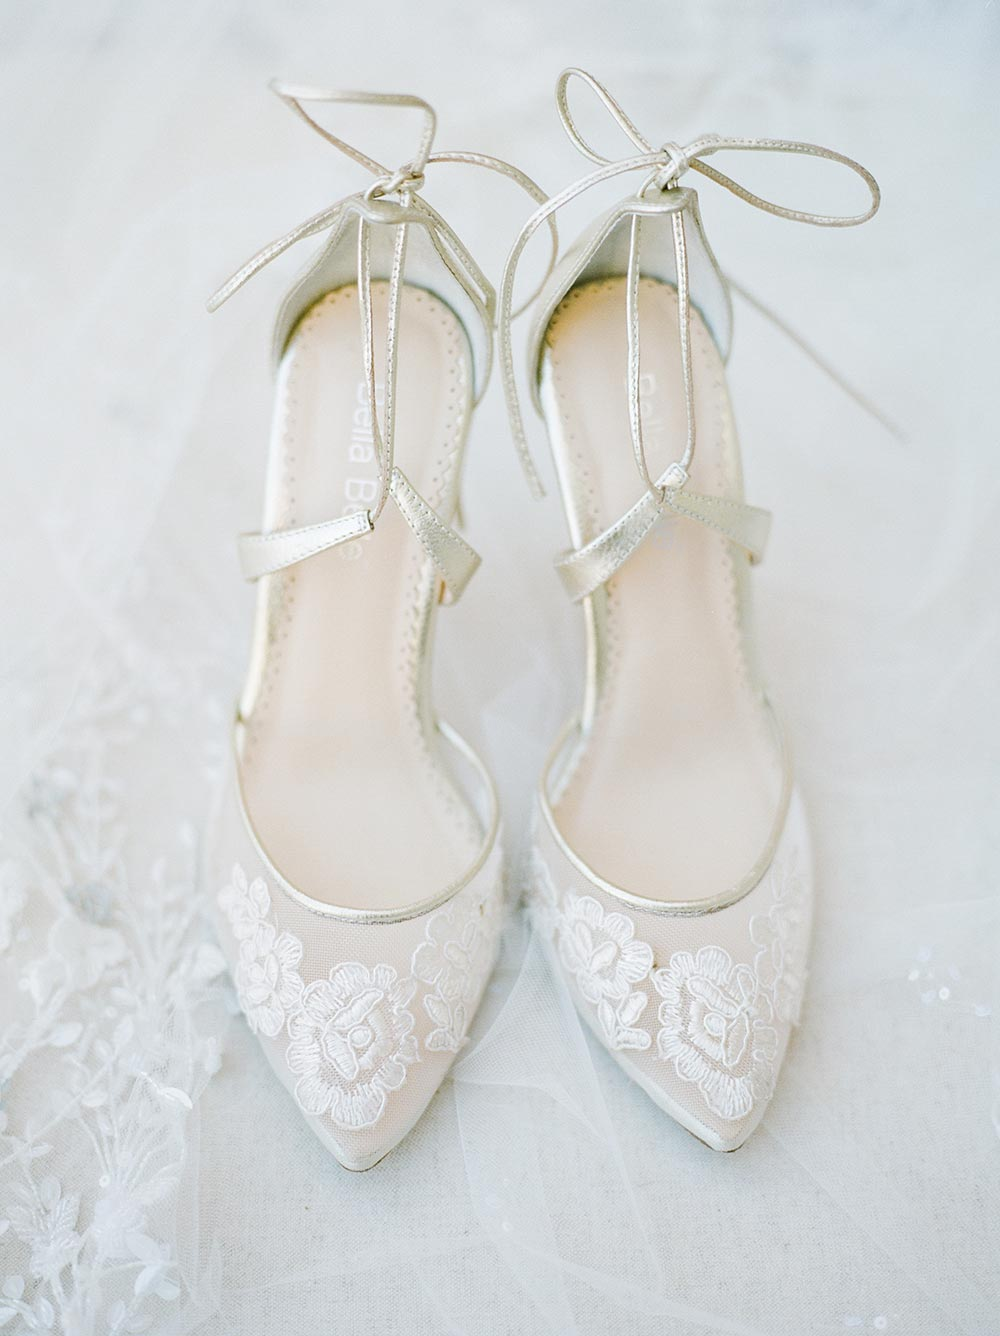 sheer bridal heels with ankle straps